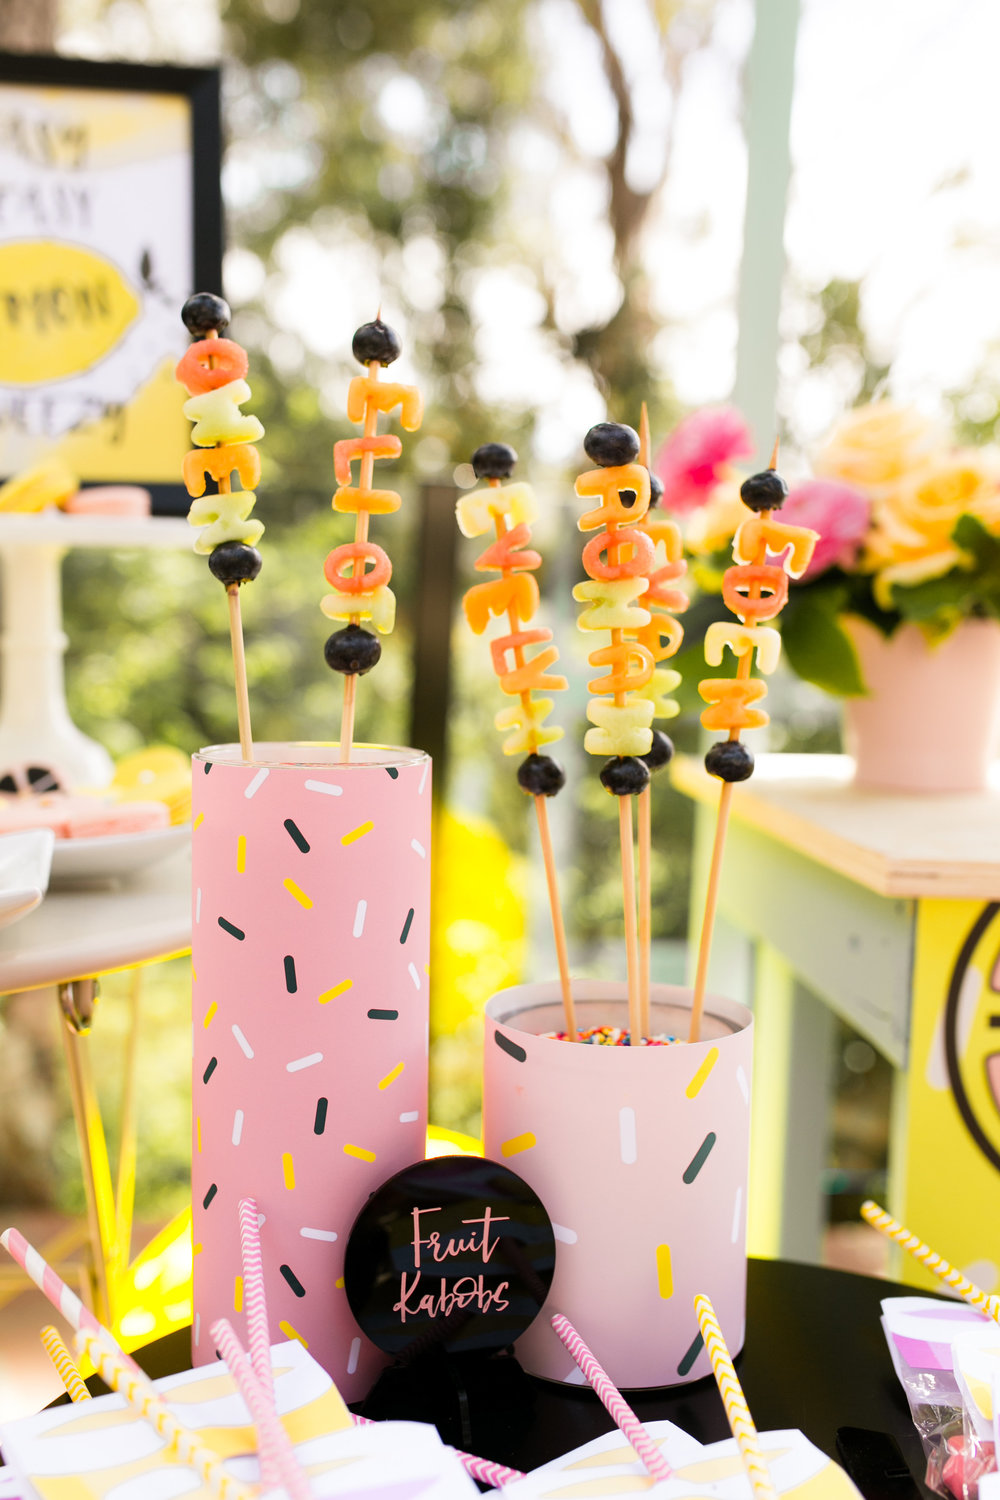 Lemonade Kids Birthday Party Food Inso - Fruit Name Skewers DIY